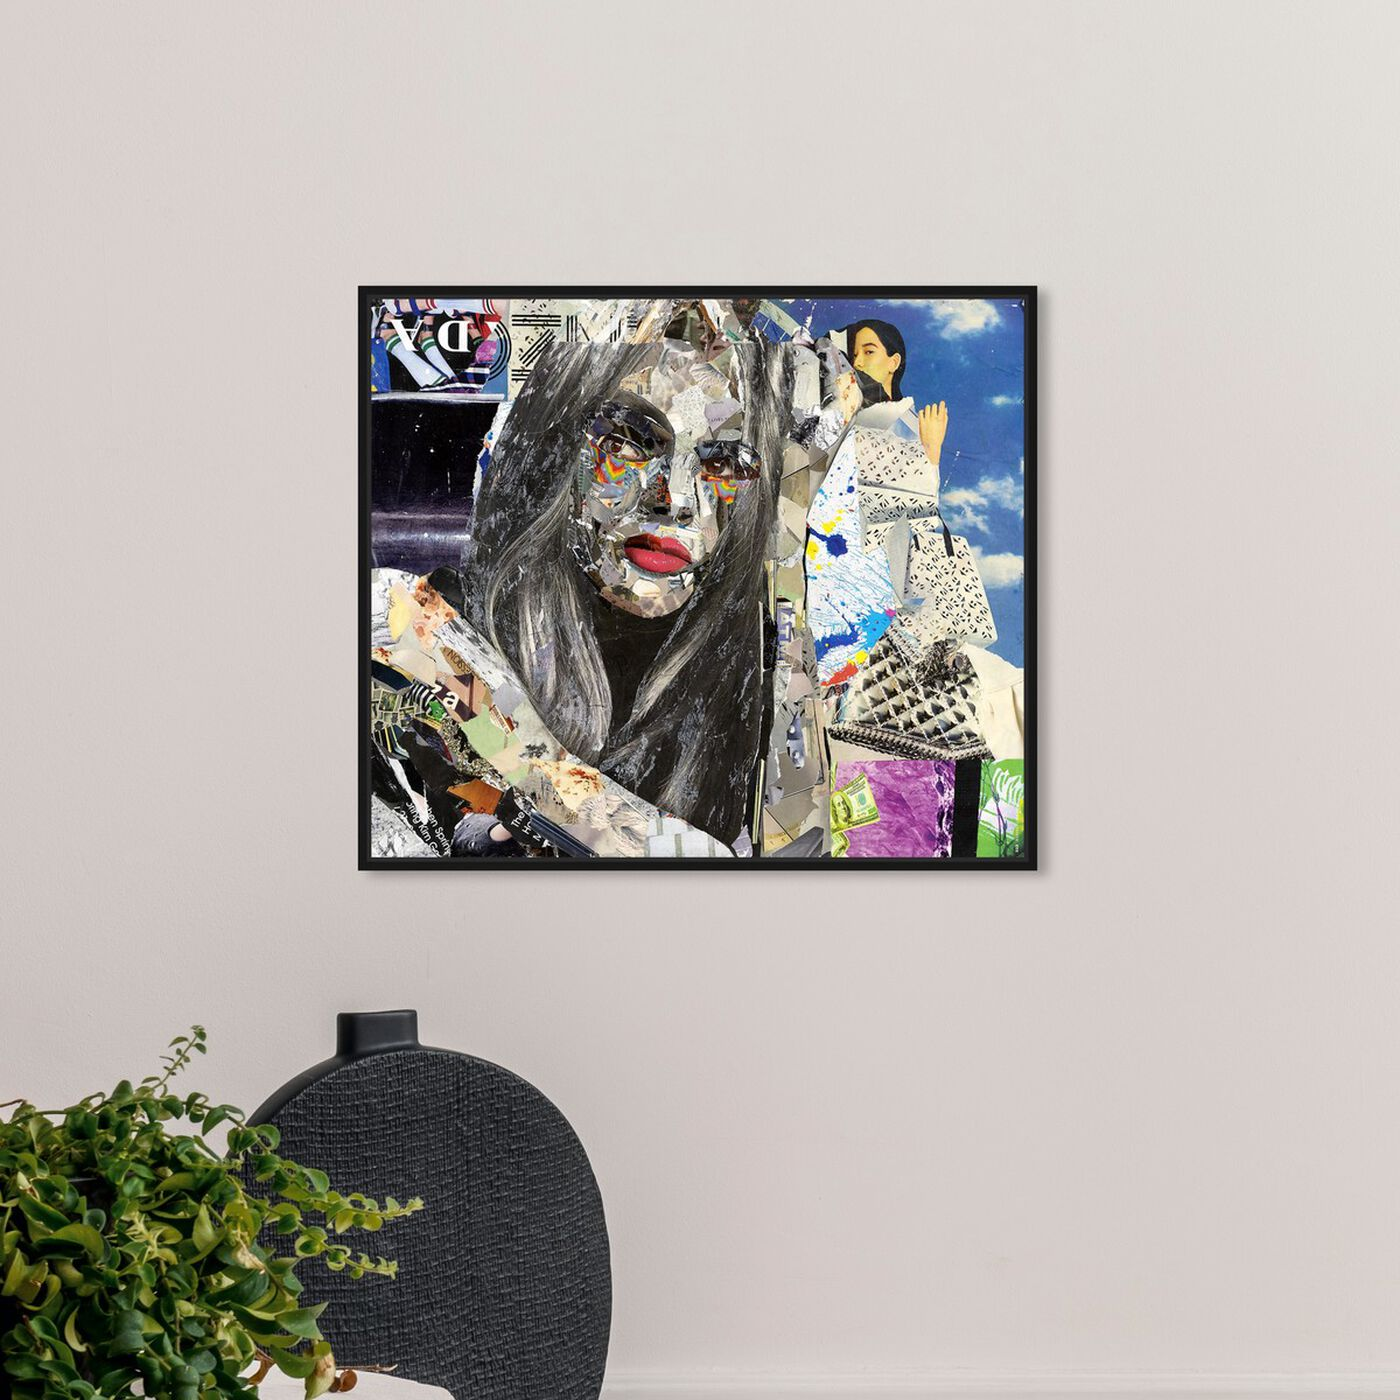 Hanging view of Katy Hirschfeld - Elegant Flow featuring fashion and glam and portraits art.